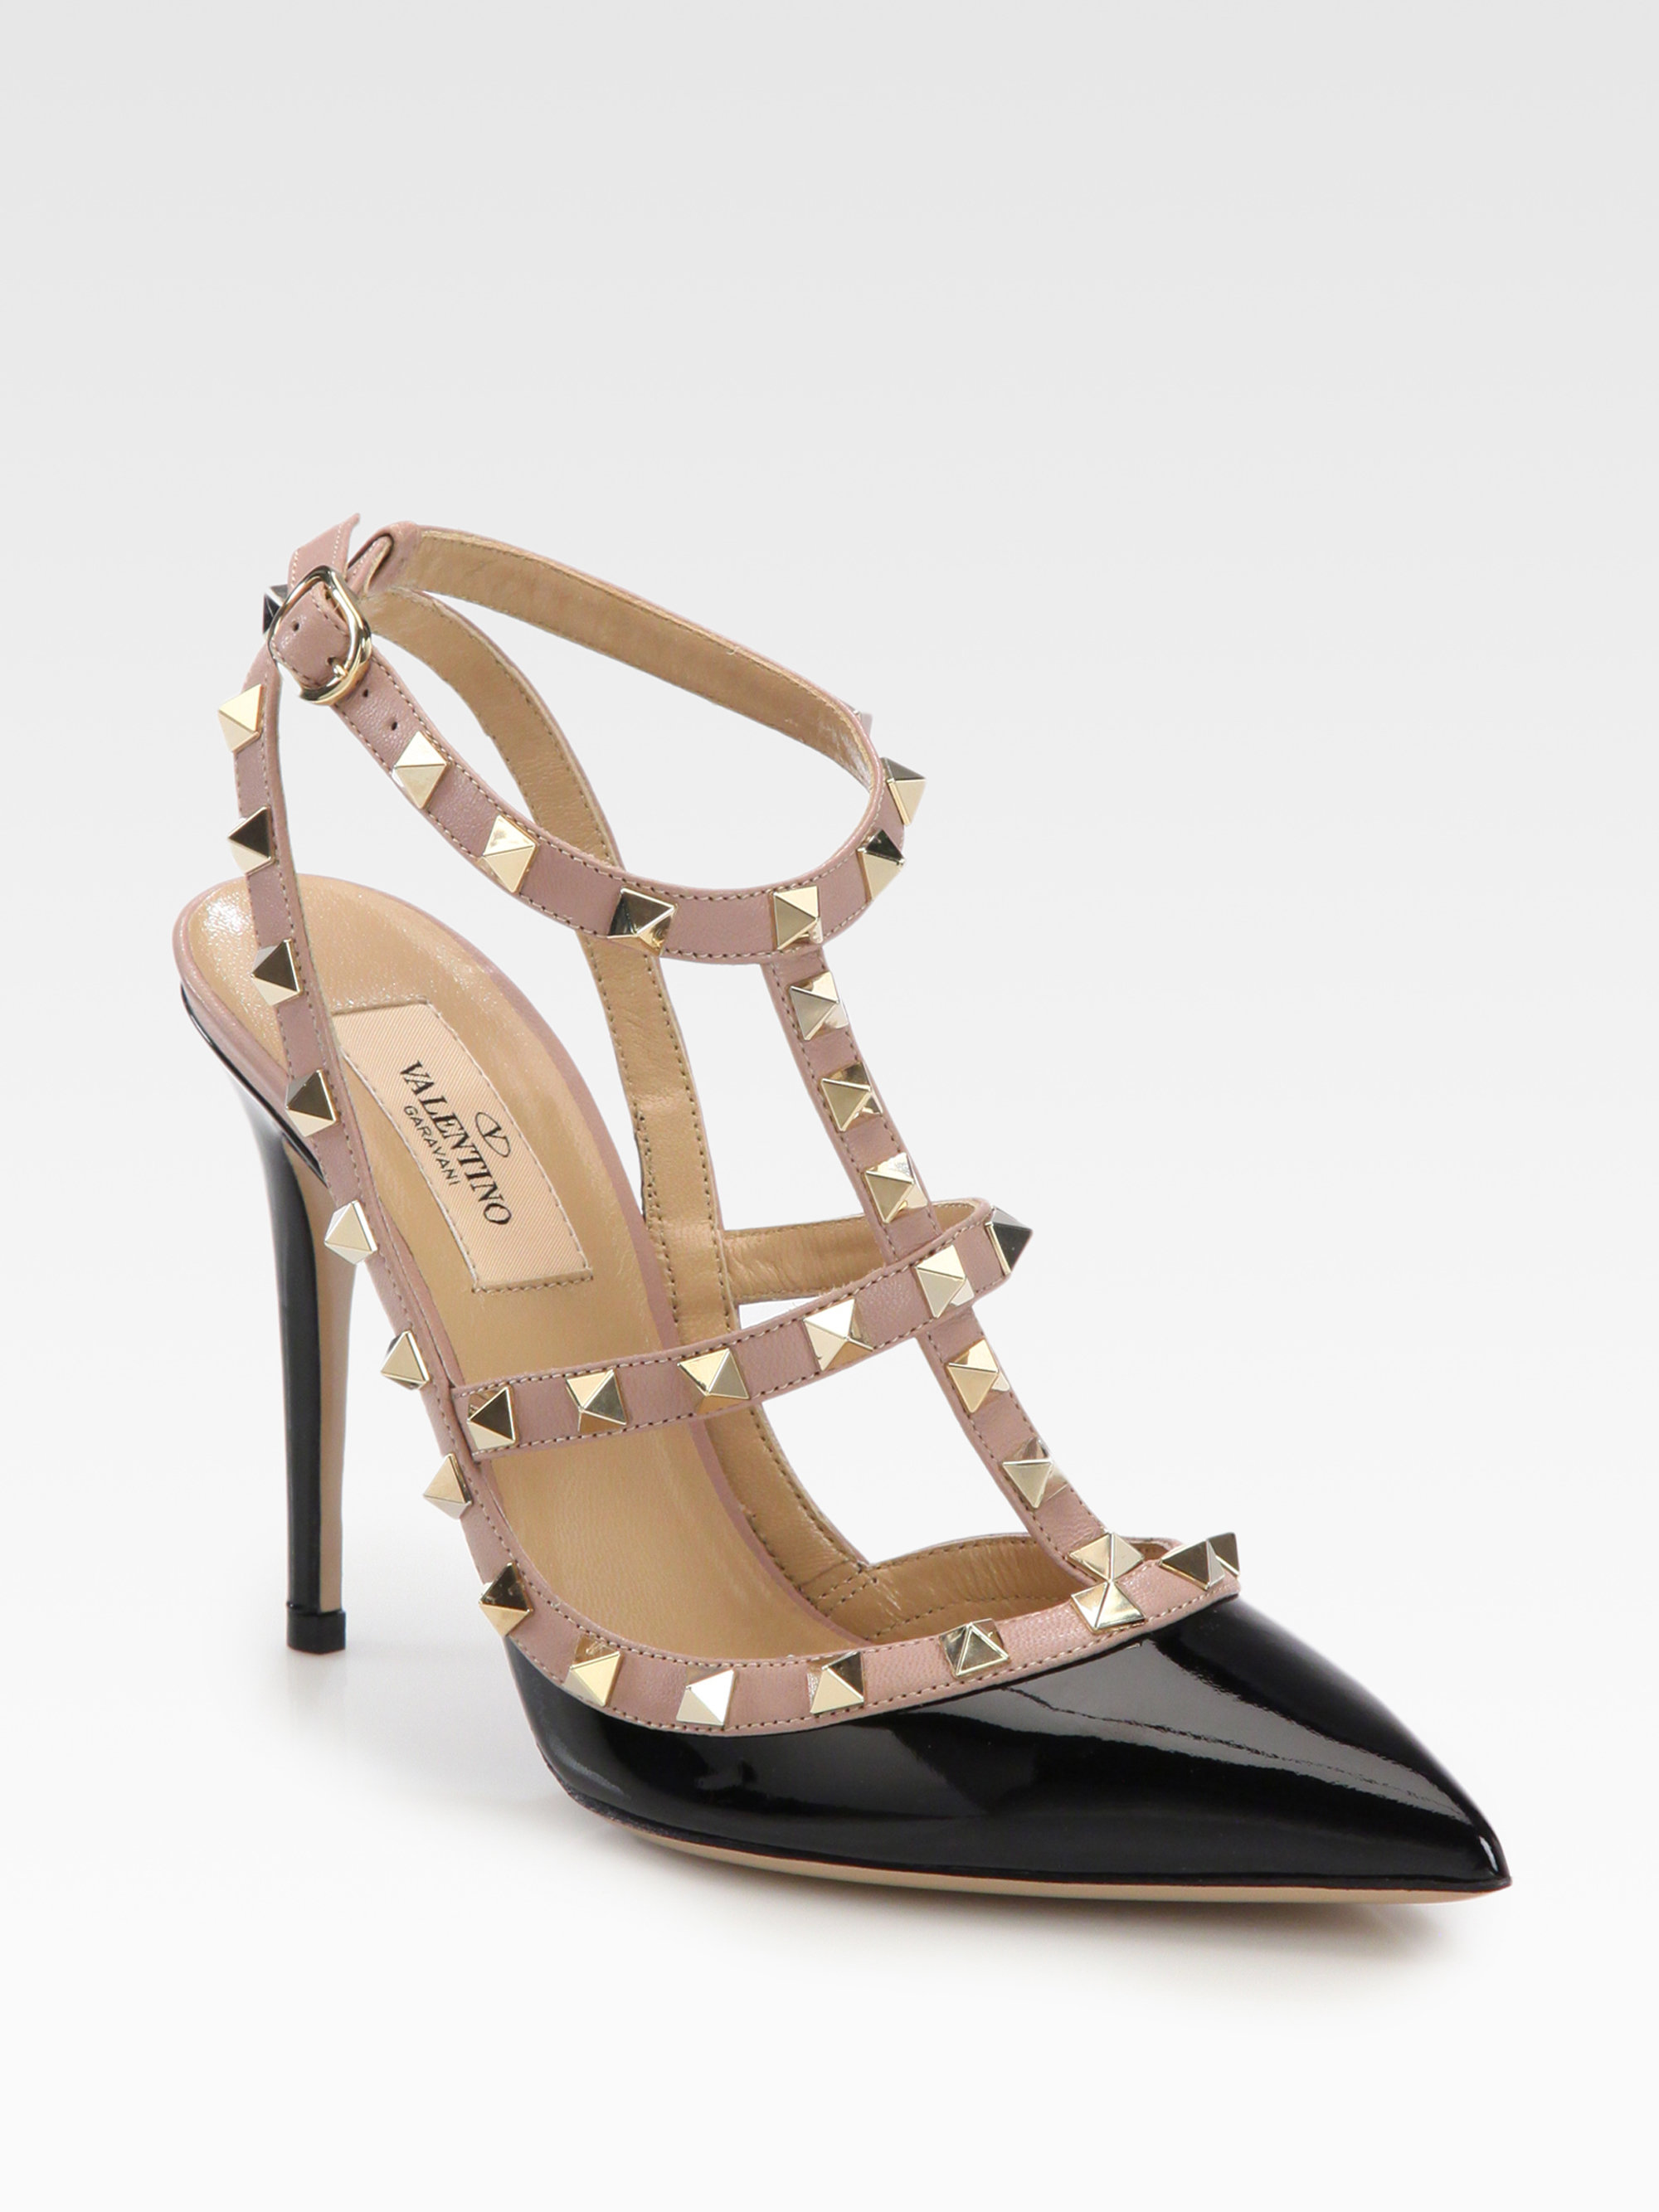 Valentino Embossed Leather Rockstud Pumps low price cheap online nicekicks cheap online clearance good selling amazing price sale online great deals cheap online 6TWbebWNfb